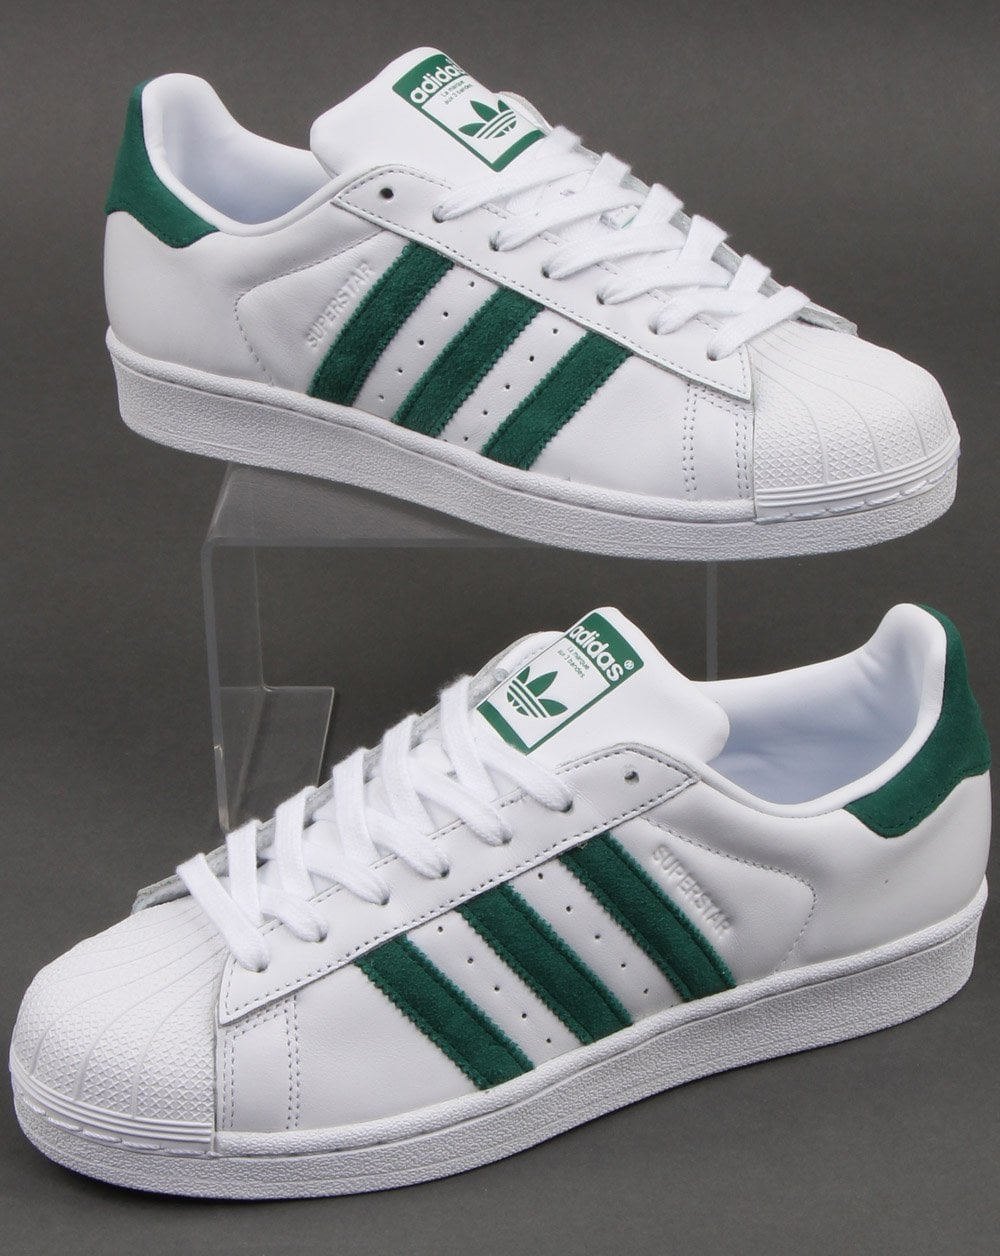 adidas trainers white and green off 75% - www.usushimd.com